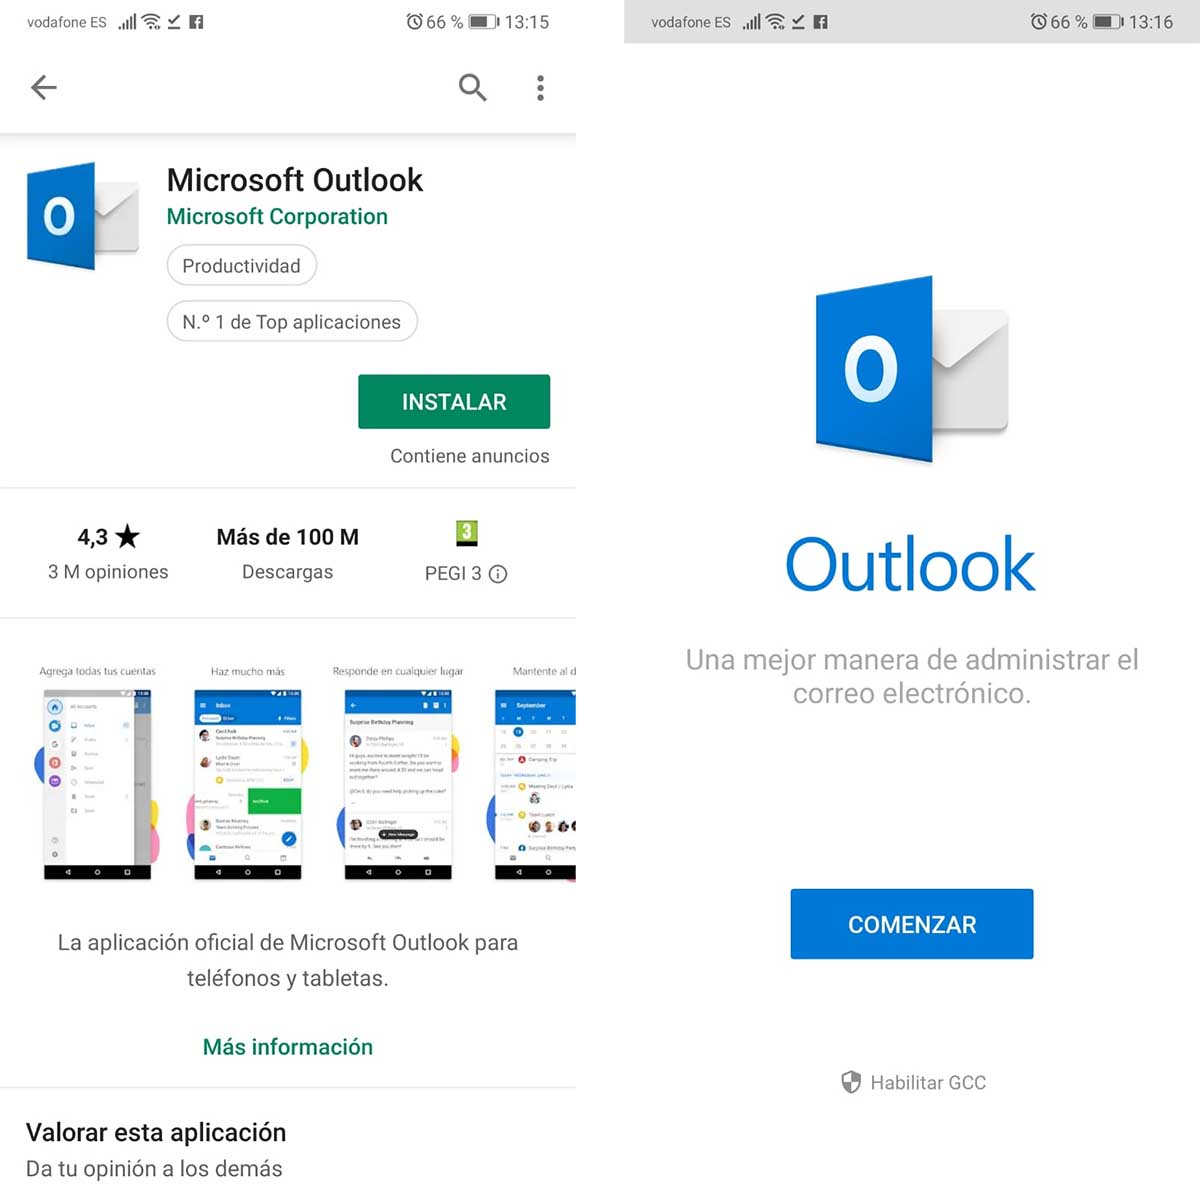 Hotmail on mobile